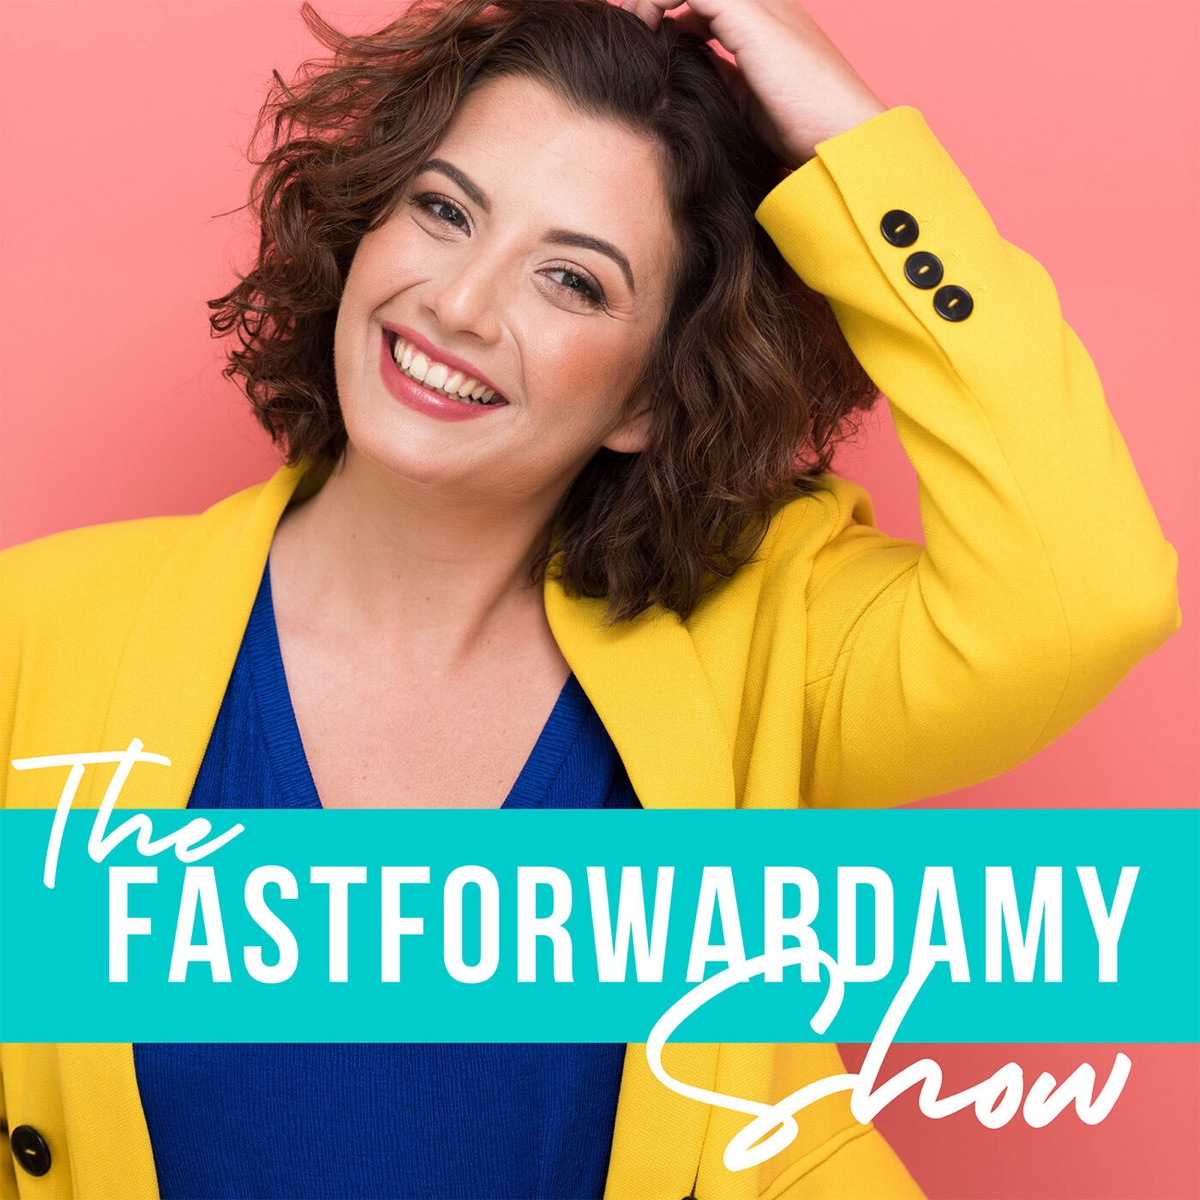 The FastForwardAmy Show